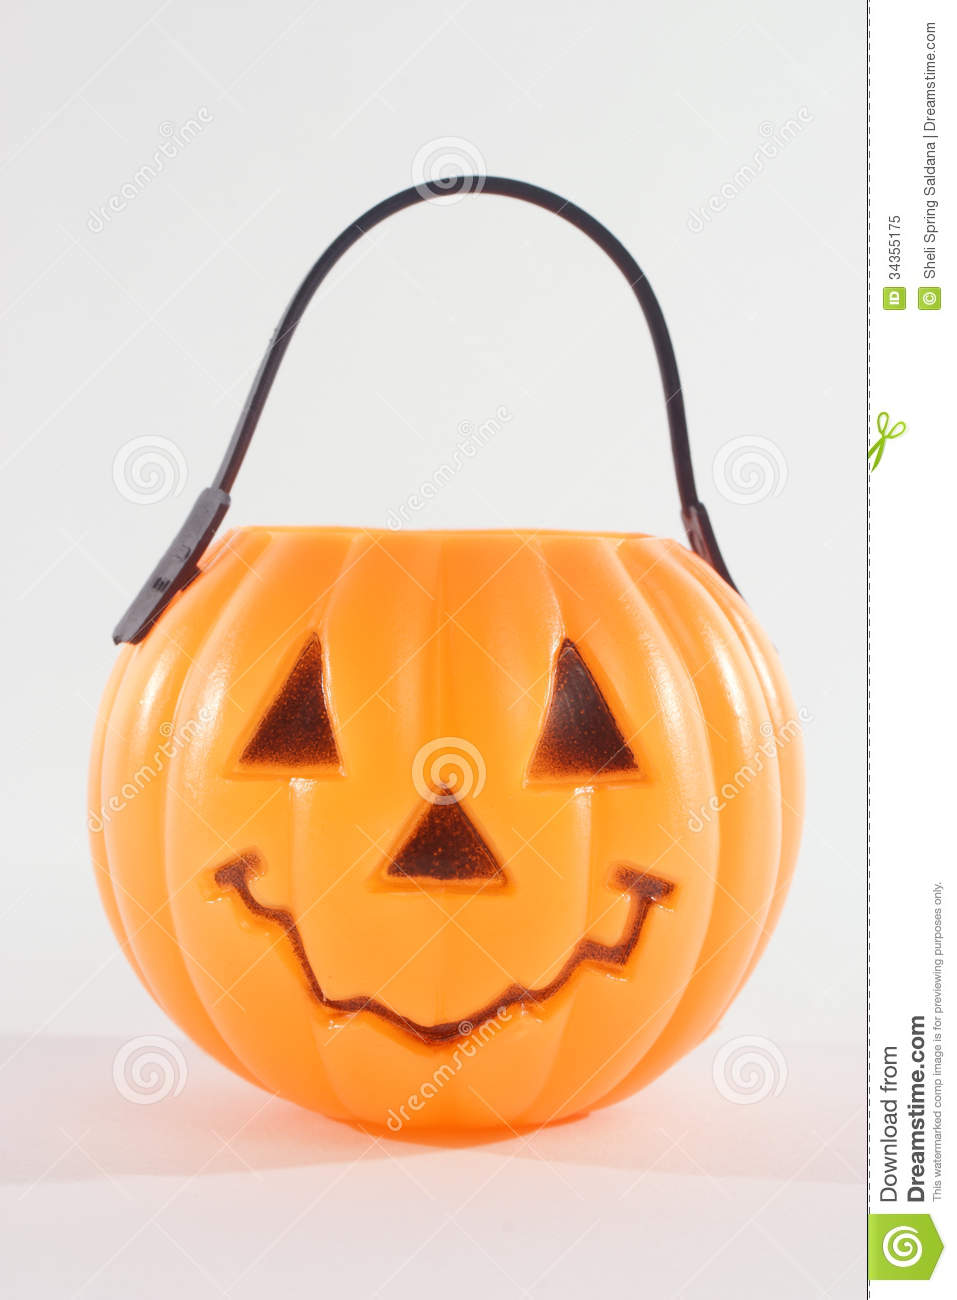 royalty free stock photo download plastic pumpkin - Plastic Pumpkins